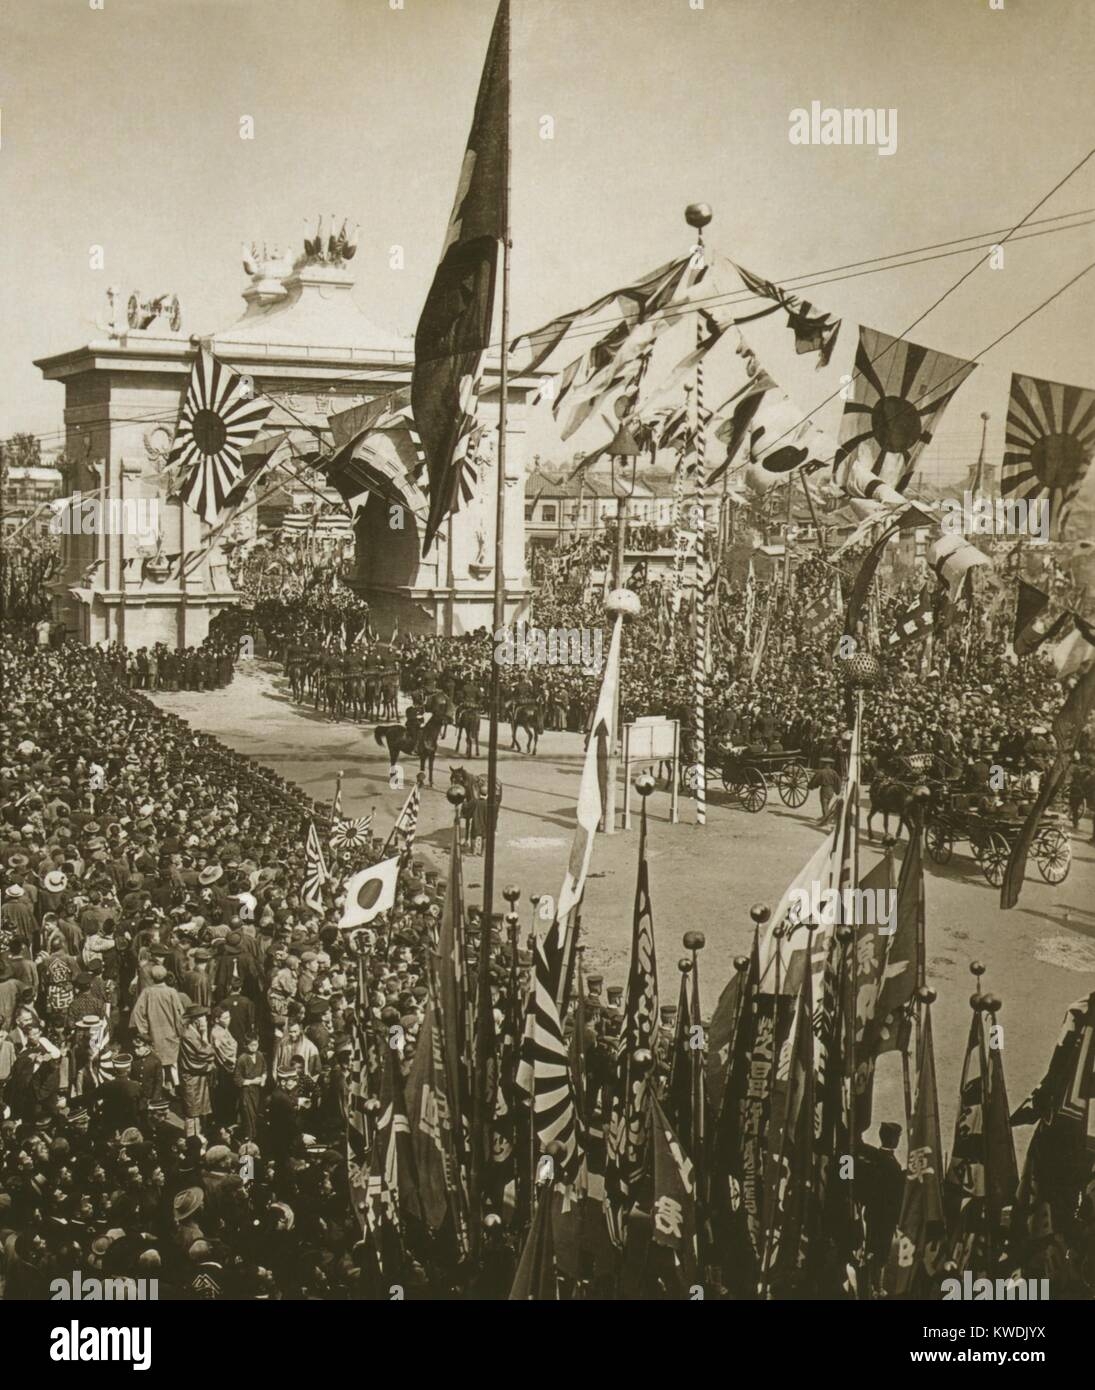 Japanese crowds celebrate the procession carrying Admiral Togo, and naval officers on Oct. 1905. Japans decisive - Stock Image